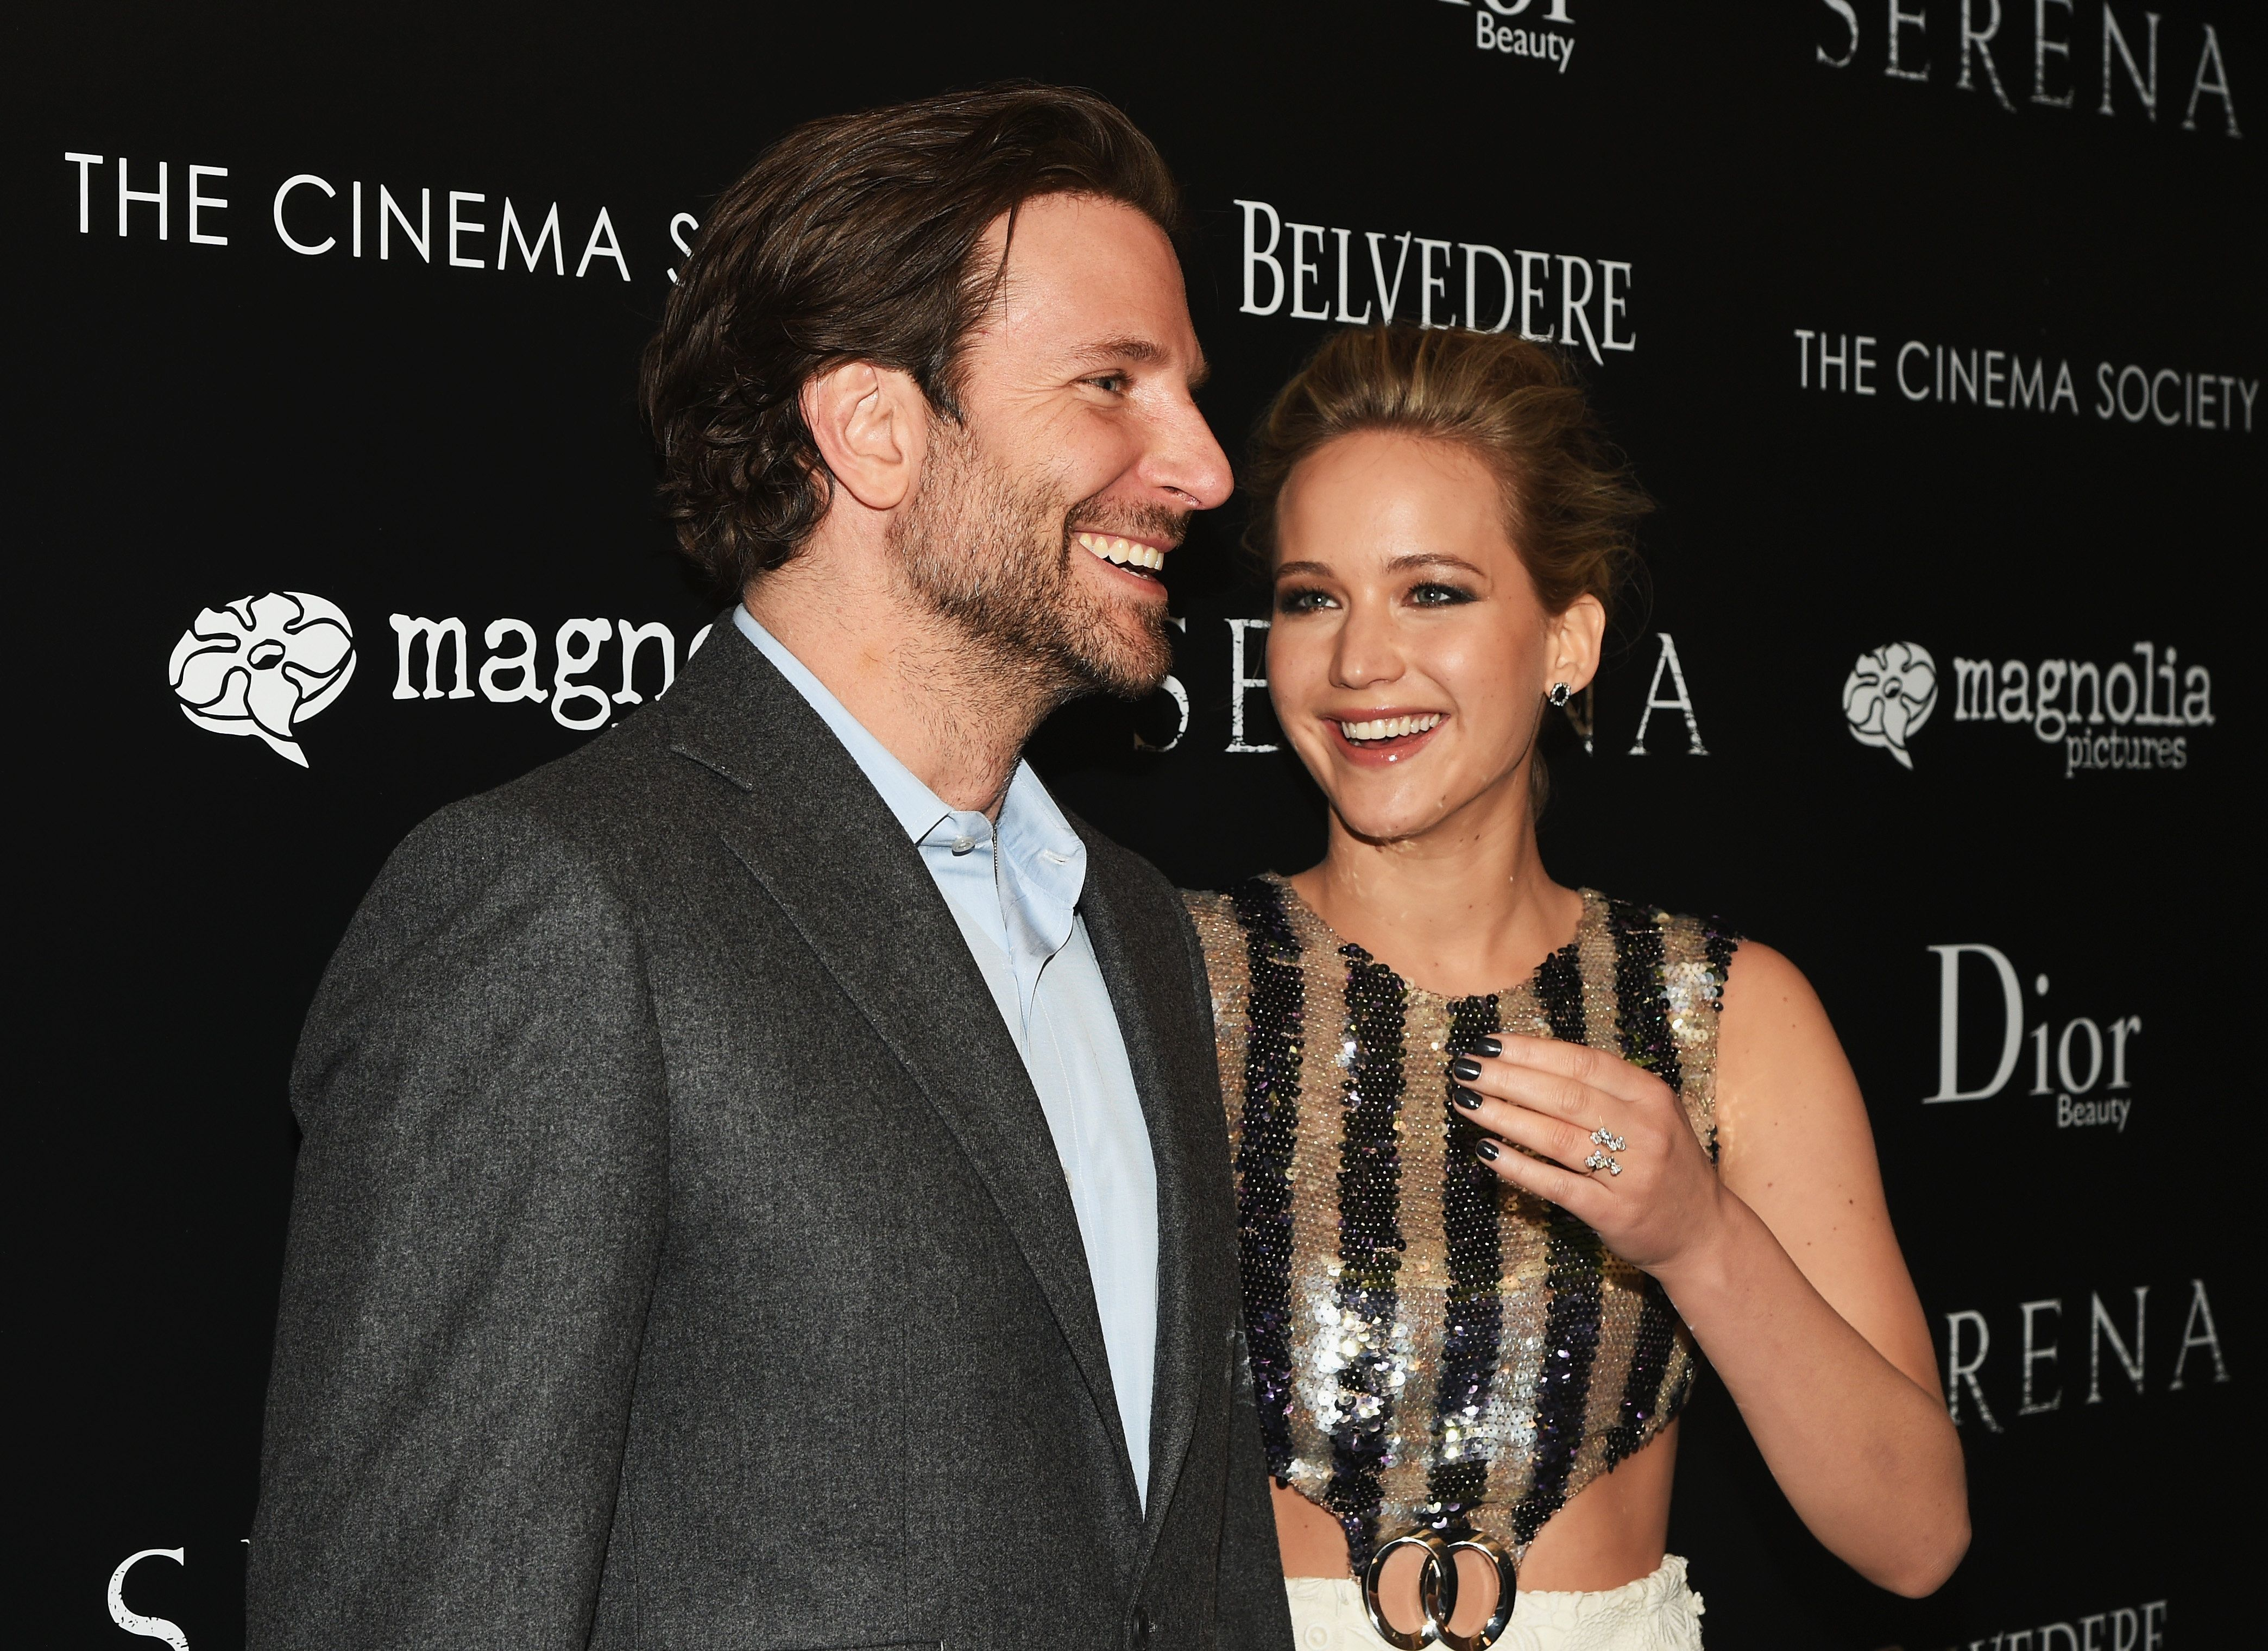 NEW YORK, NY - MARCH 21:  Actors Bradley Cooper and Jennifer Lawrence attend a screening of 'Serena' hosted by Magnolia Pictures and The Cinema Society with Dior Beauty on March 21, 2015 in New York City.  (Photo by Andrew H. Walker/FilmMagic)